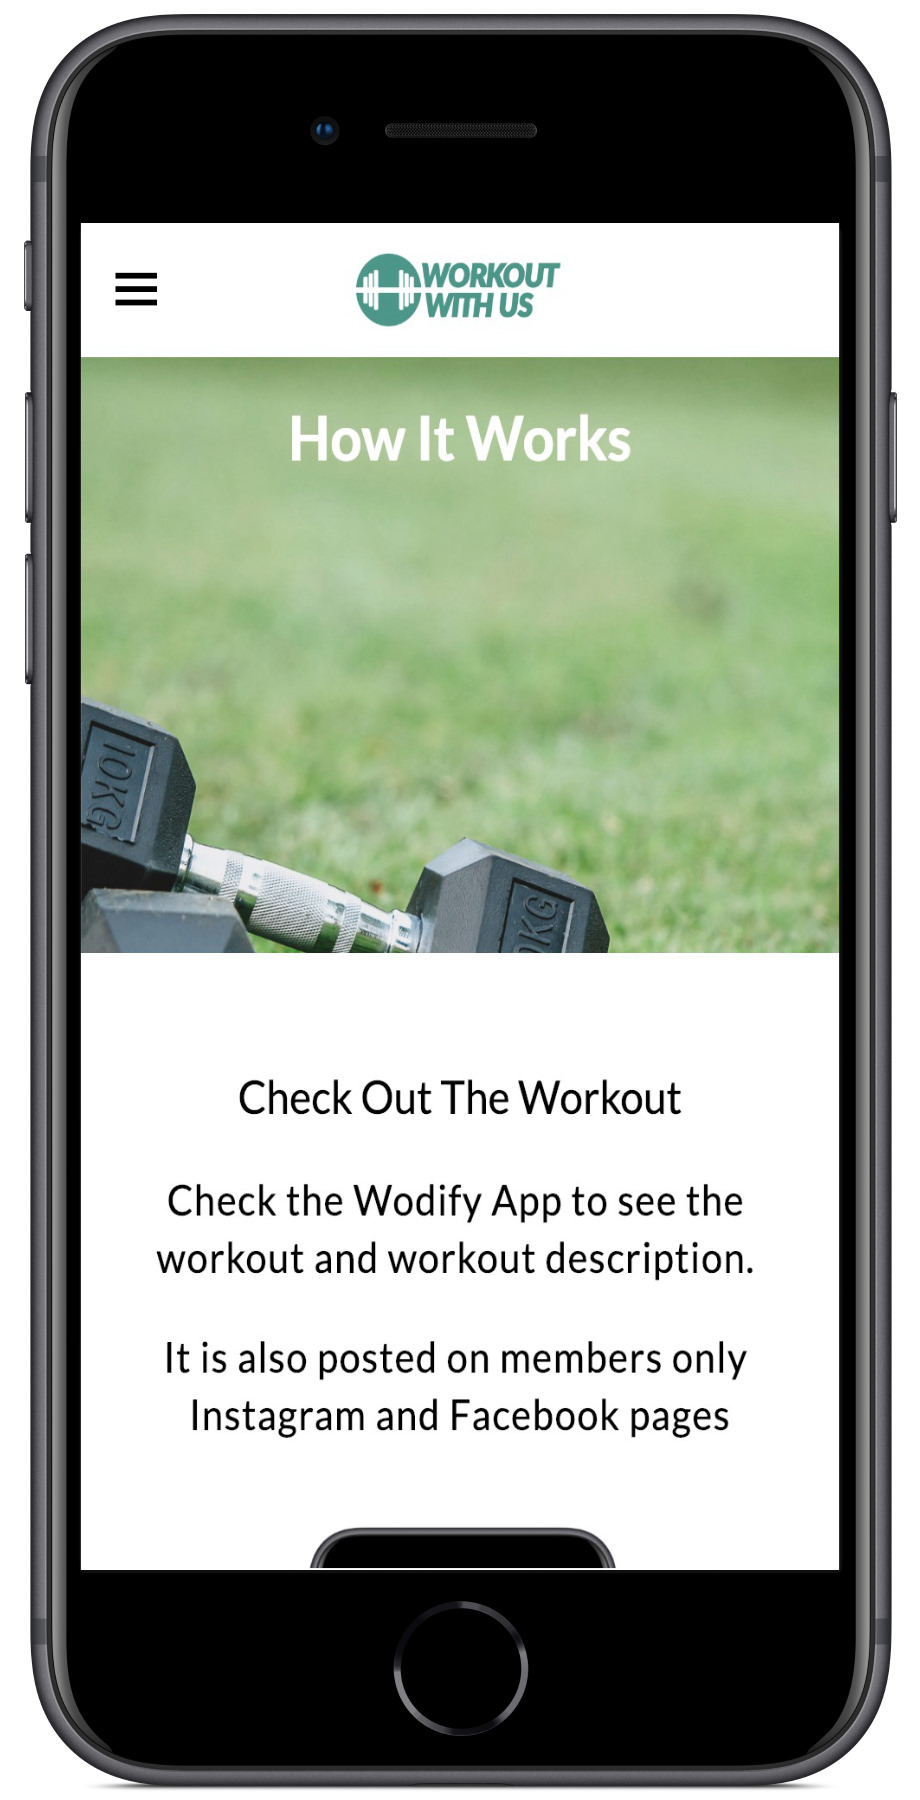 Workout With Us - iPhone.jpg